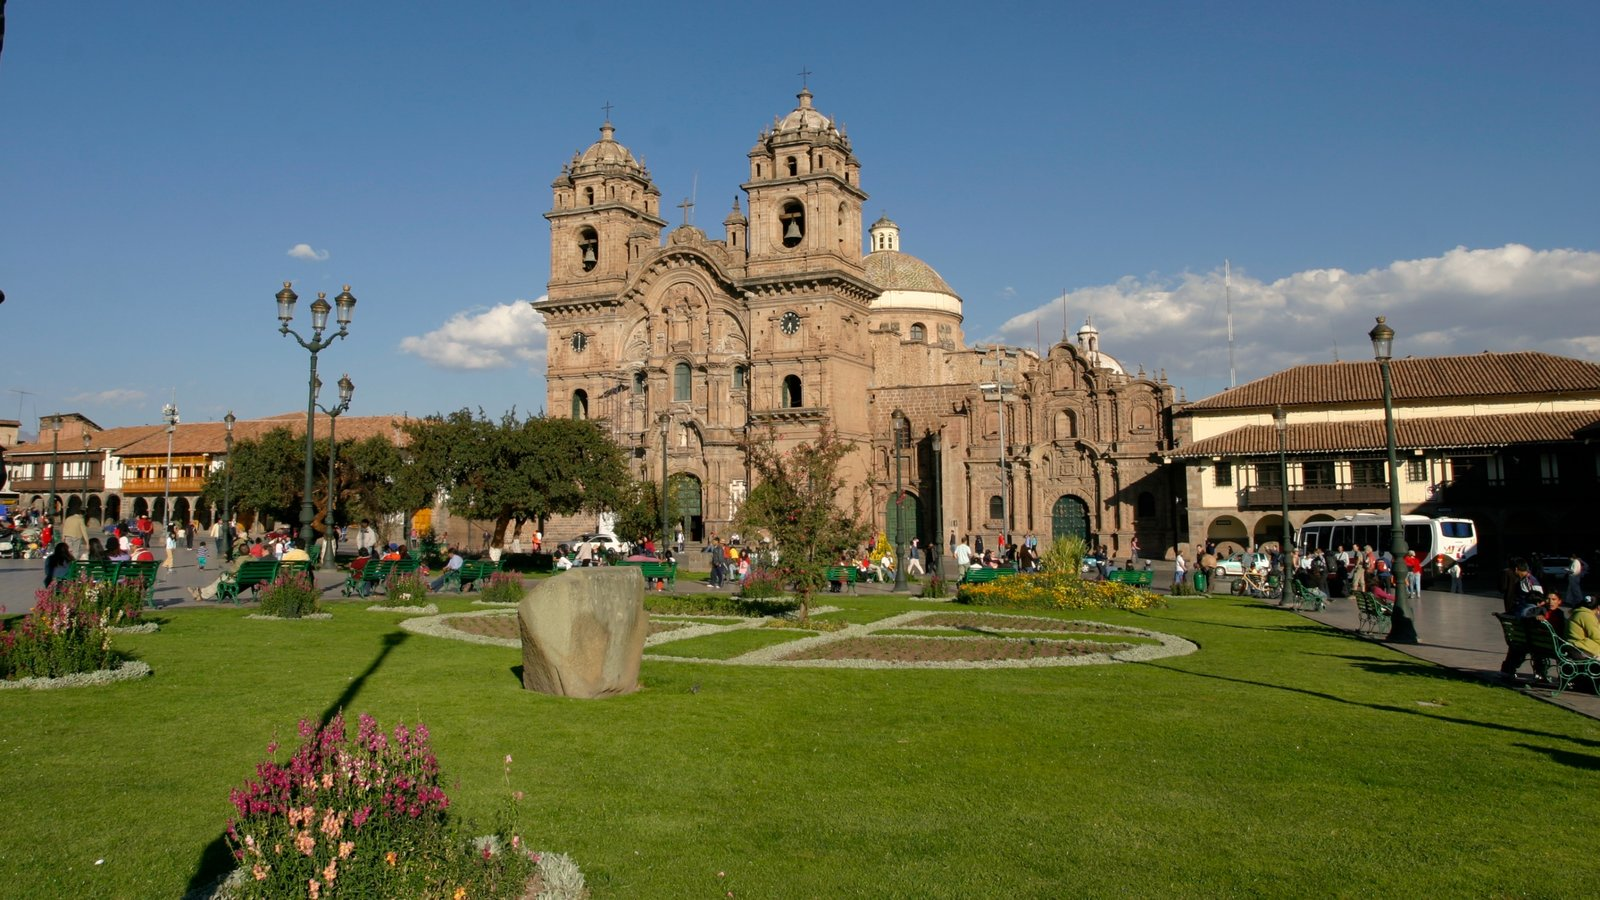 Cusco showing heritage architecture and a church or cathedral